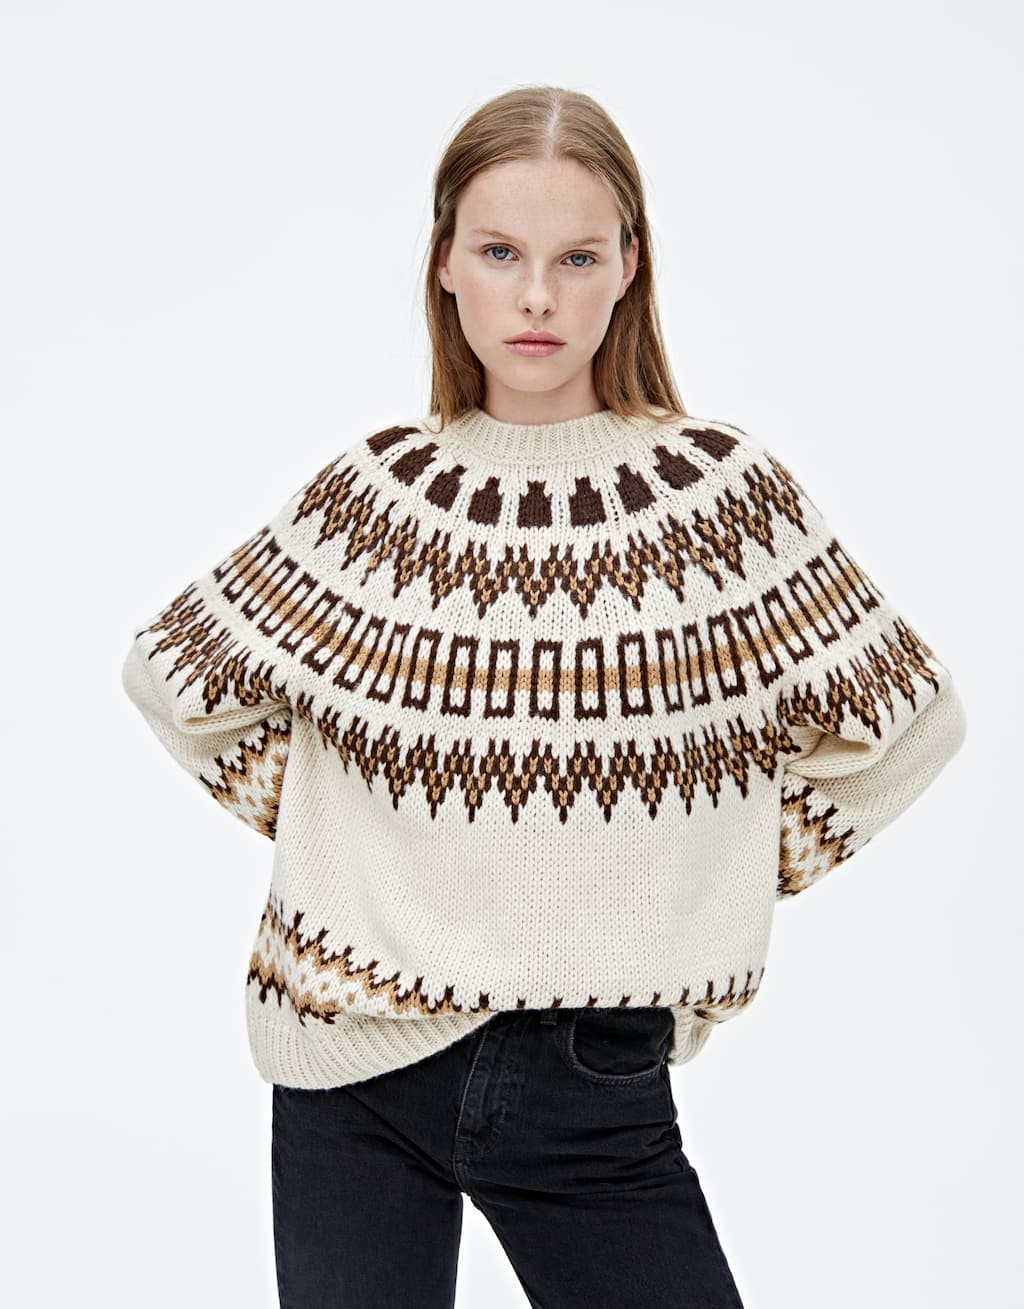 Sand Coloured Jacquard Sweater by Pull & Bear